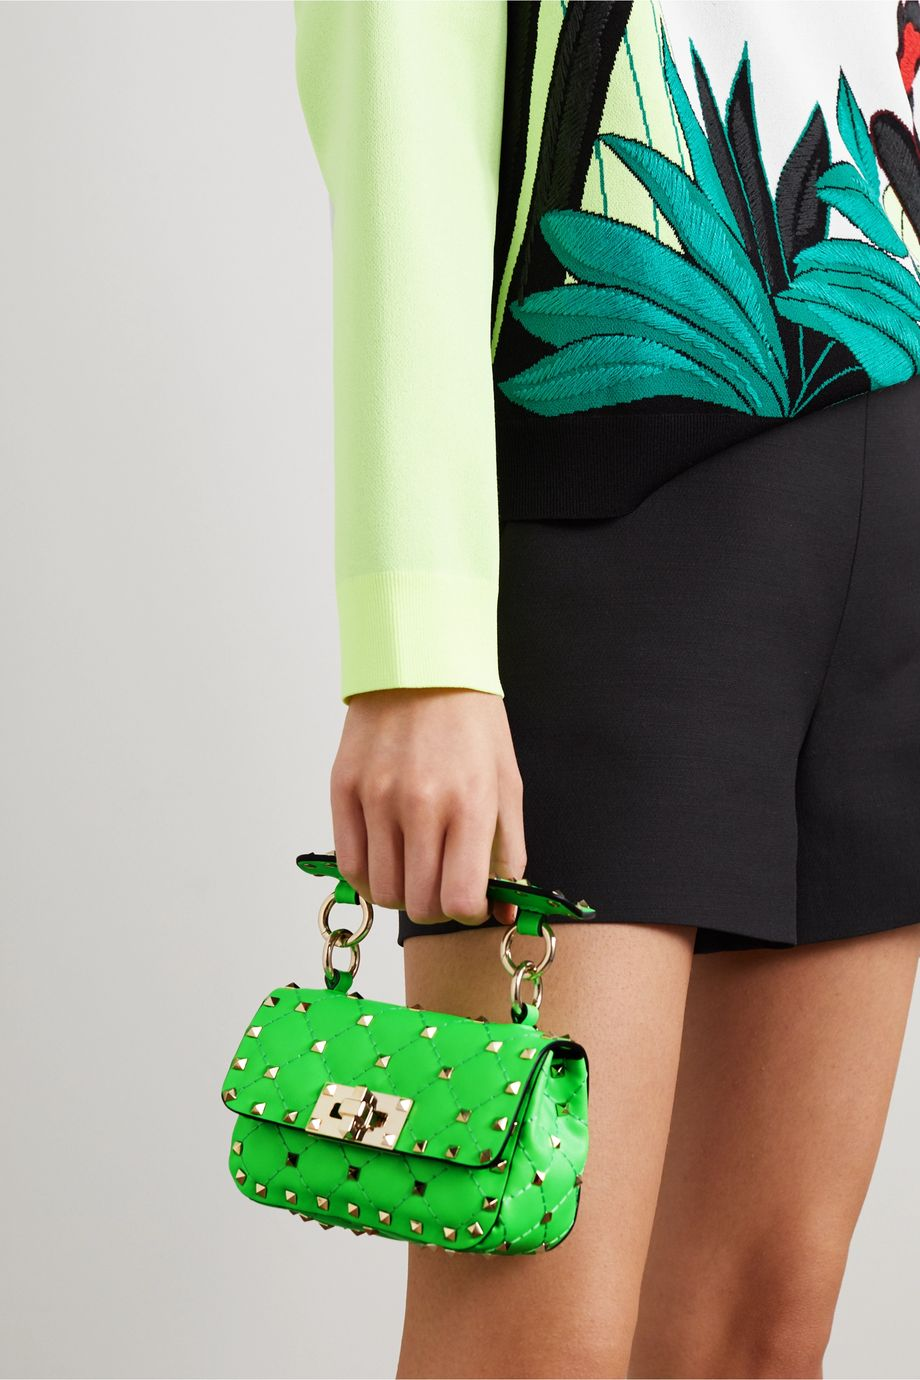 Valentino Valentino Garavani Rockstud Spike mini quilted neon leather shoulder bag